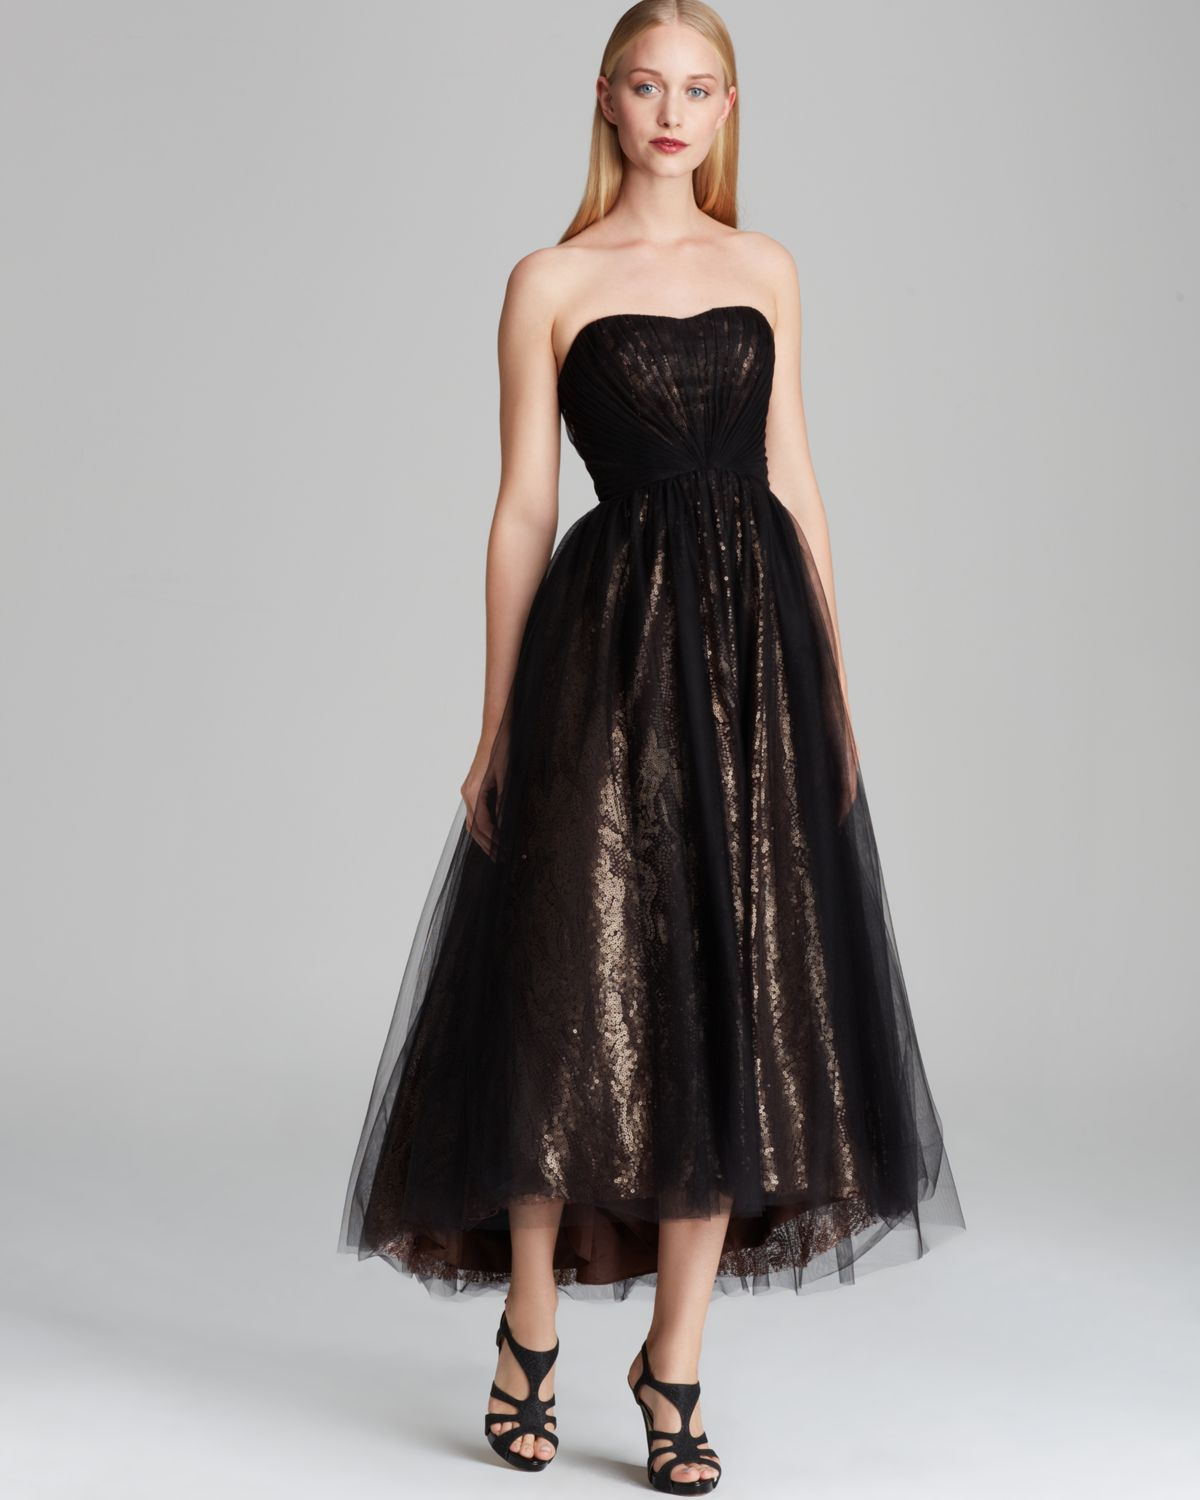 ML Monique Lhuillier Tea-Length Tulle Over Metallic Lace Gown - Strapless | Bloomingdale's